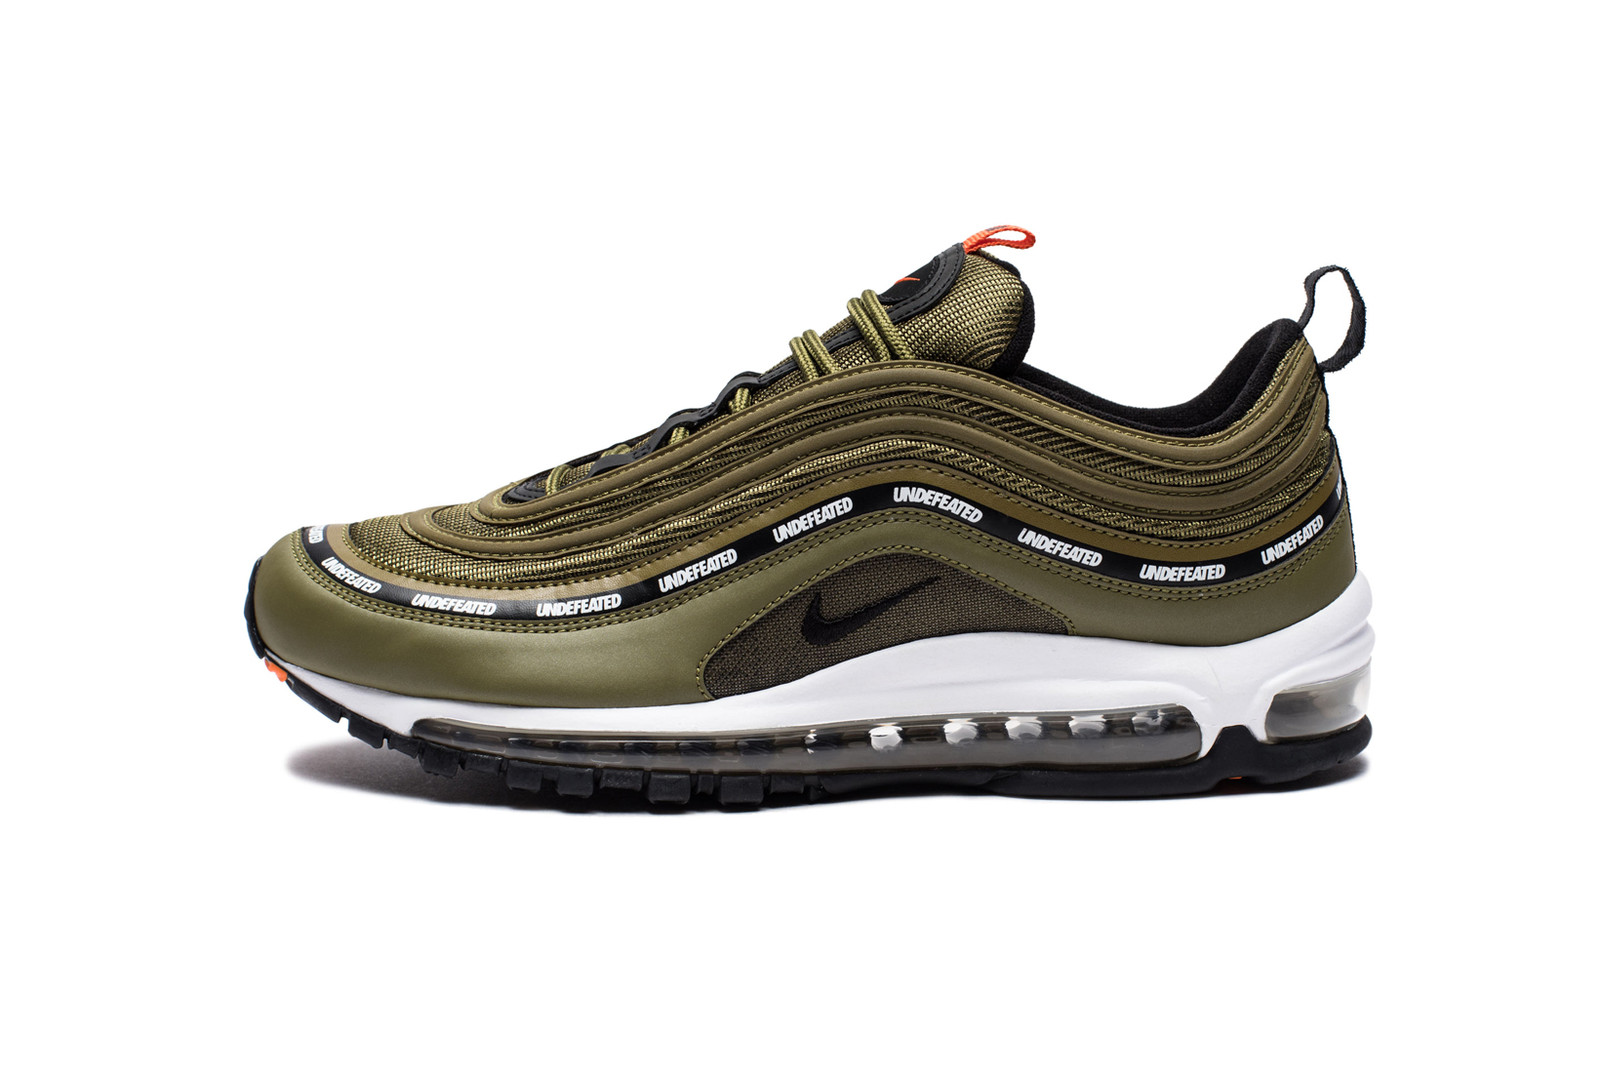 UNDEFEATED Nike Air Max 97 Footwear Sneakers Shoes Accessories Bags Socks  Hoodies Tees T-Shirts e3178fdd2